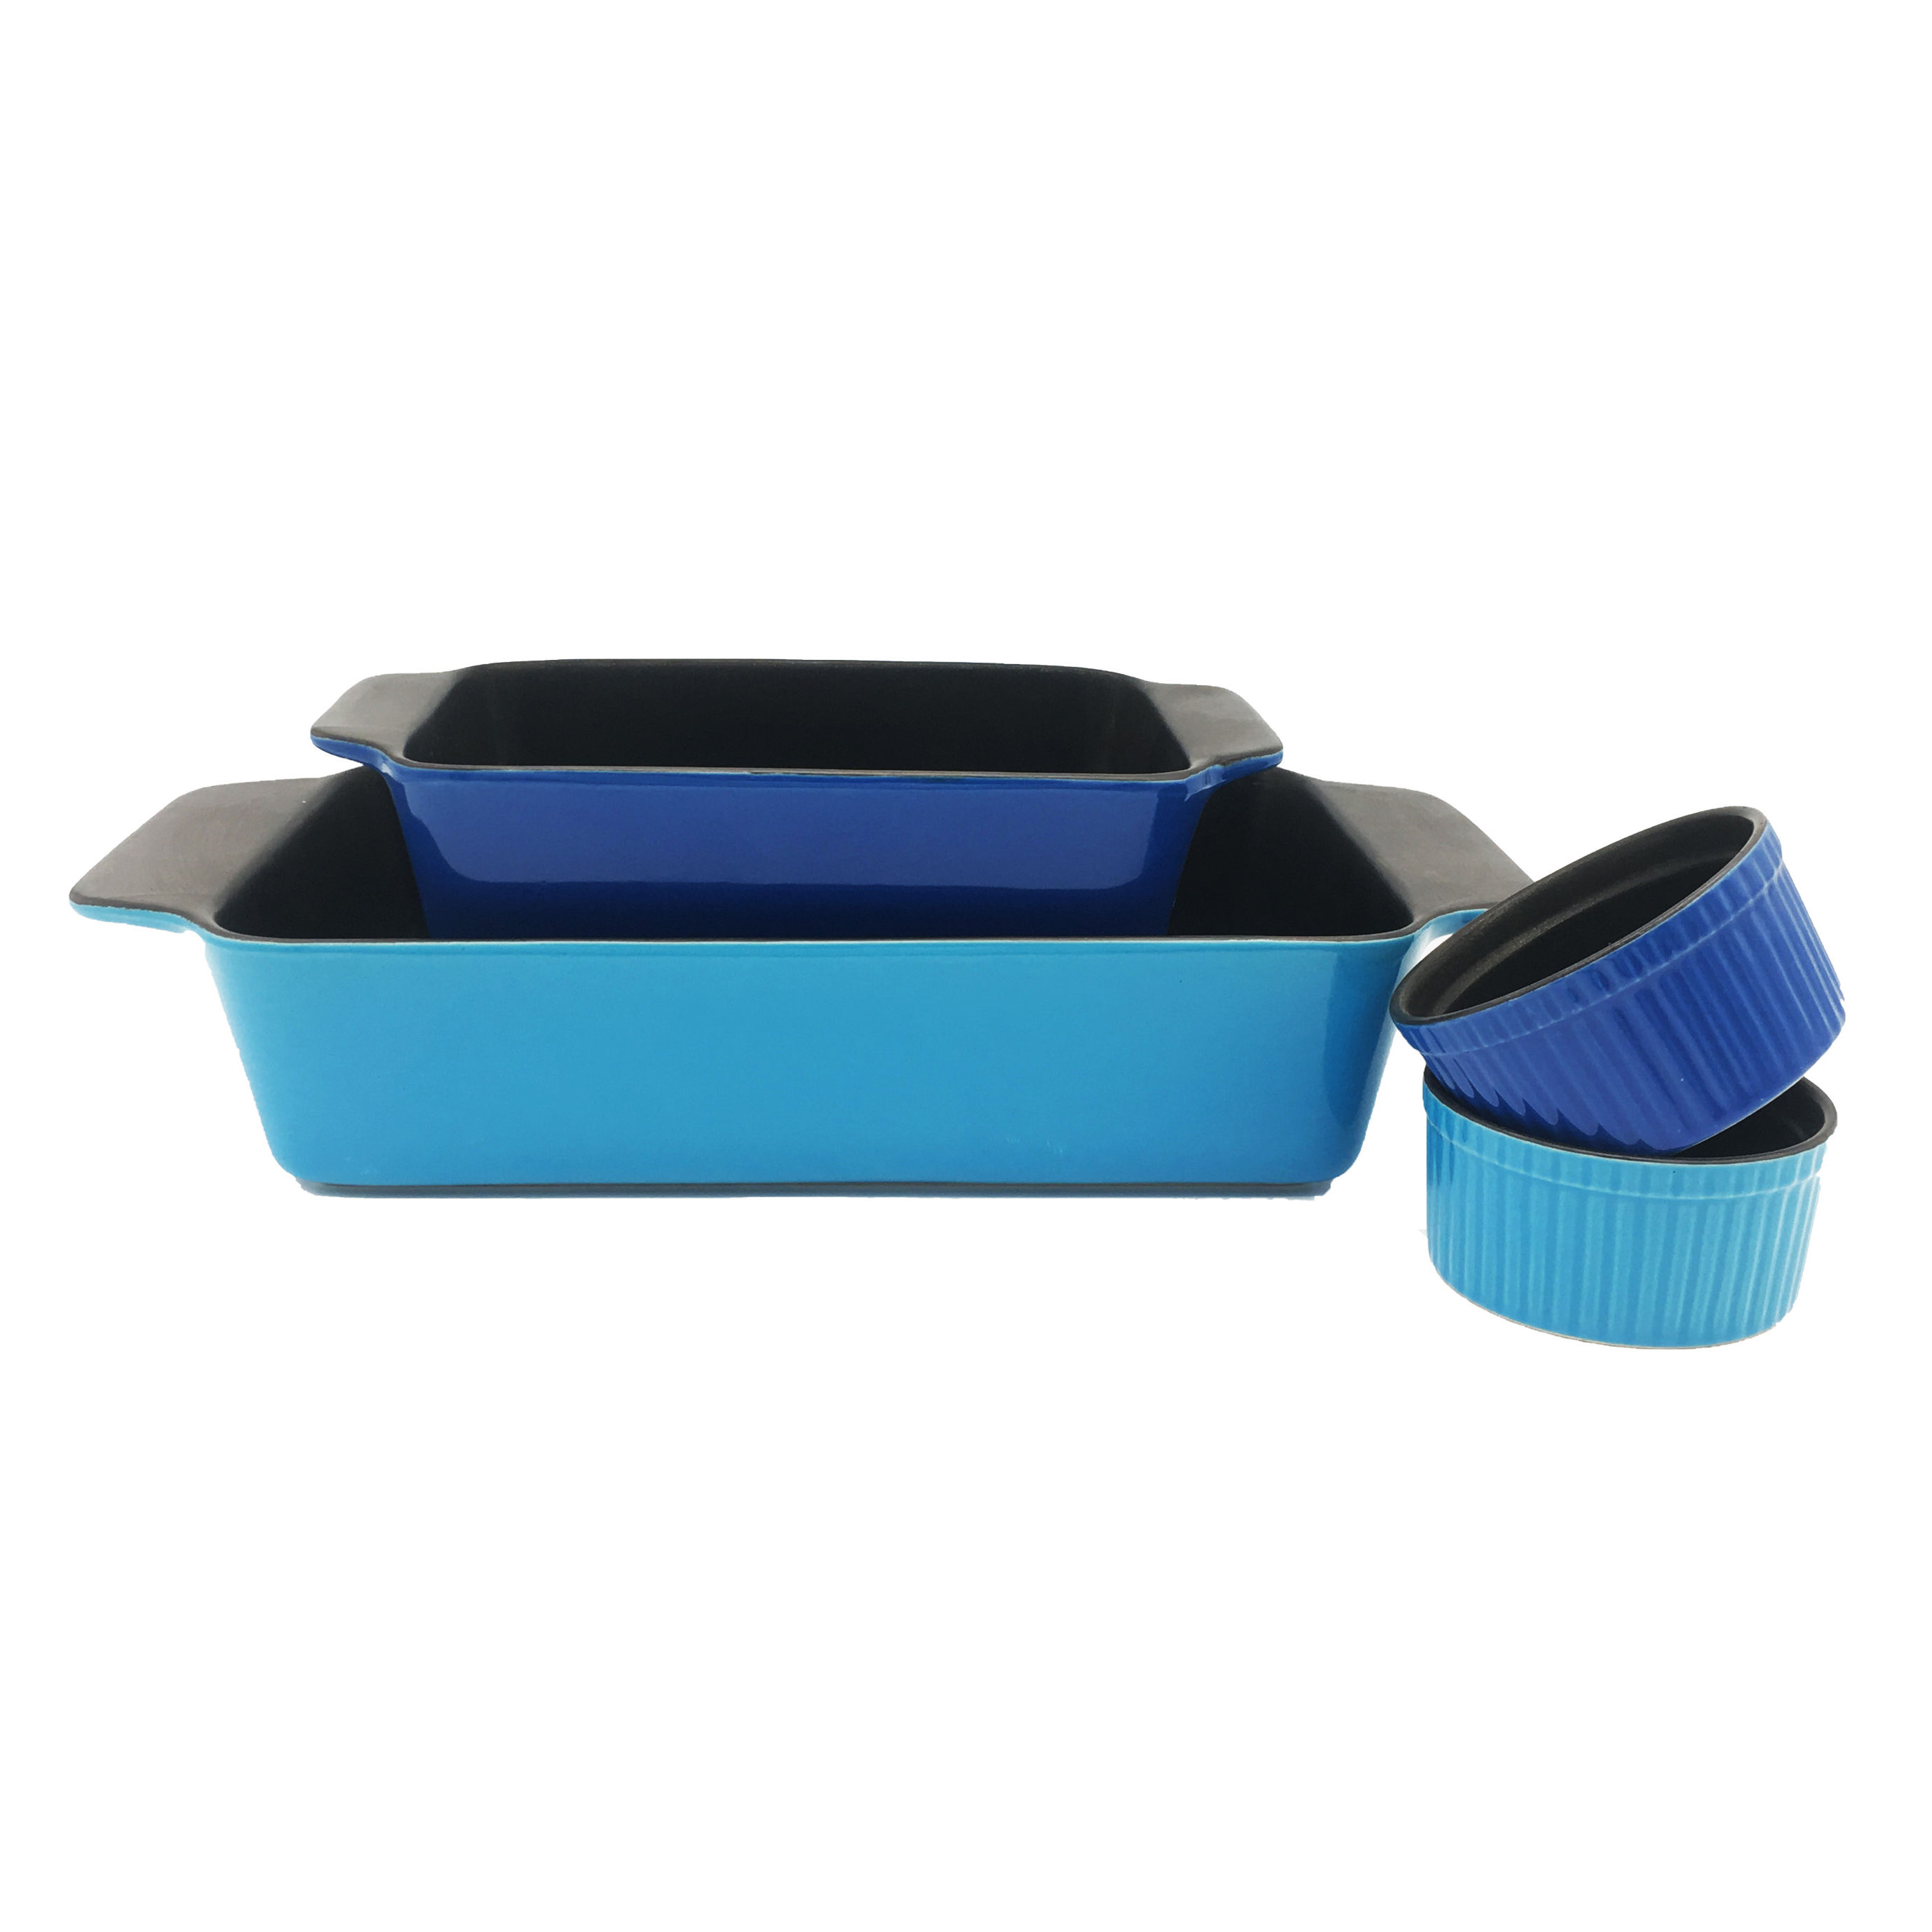 Safe home use Set of 4 non-stick coating ceramic bakeware baking dish